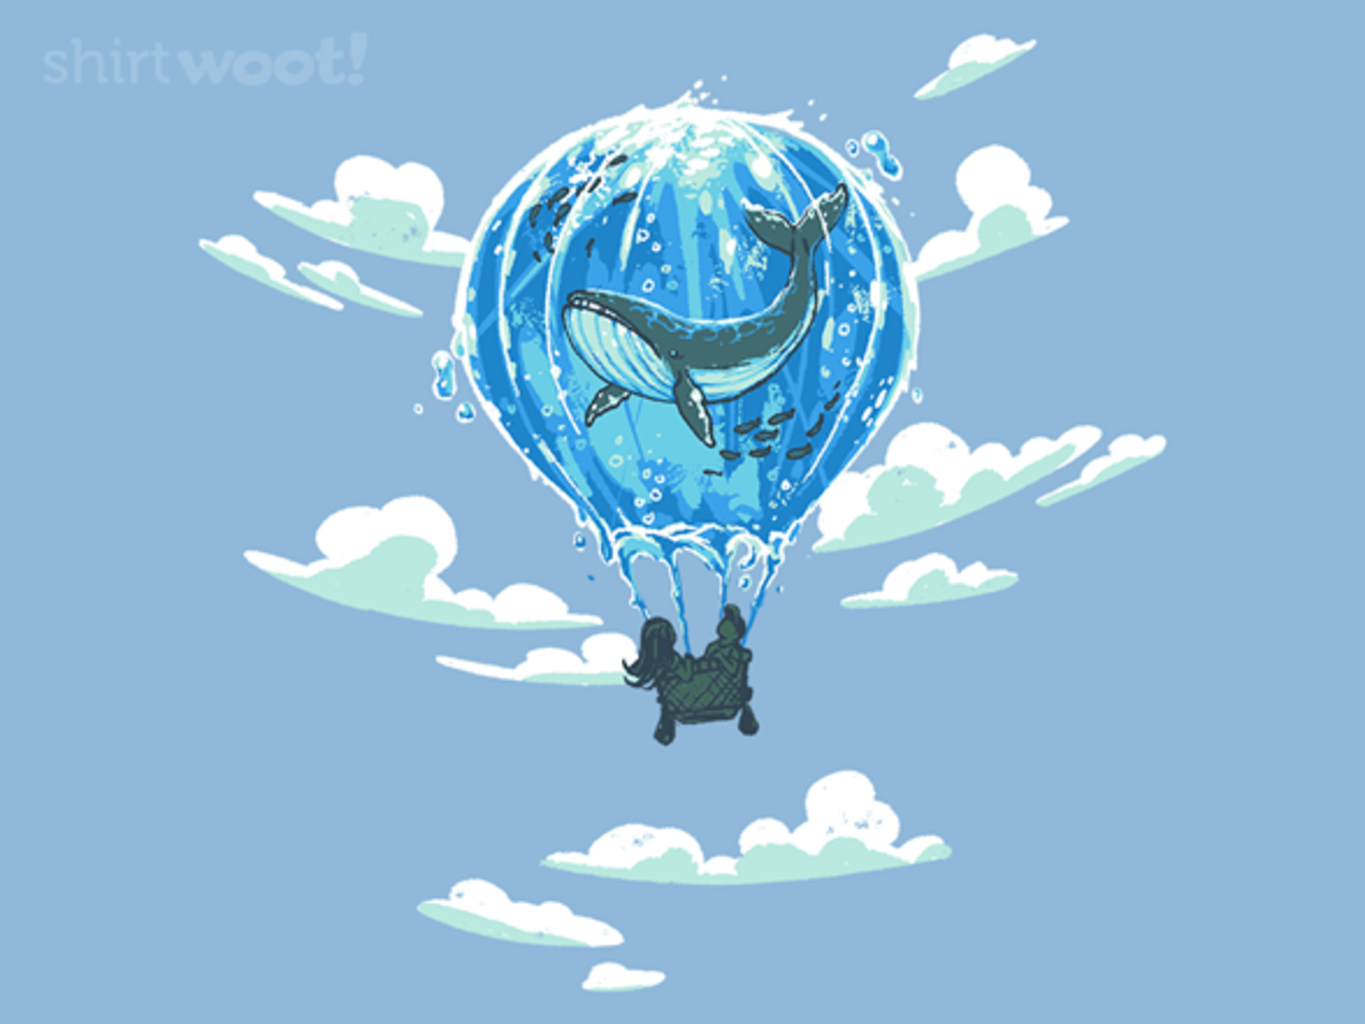 Woot!: Flying Water Balloon